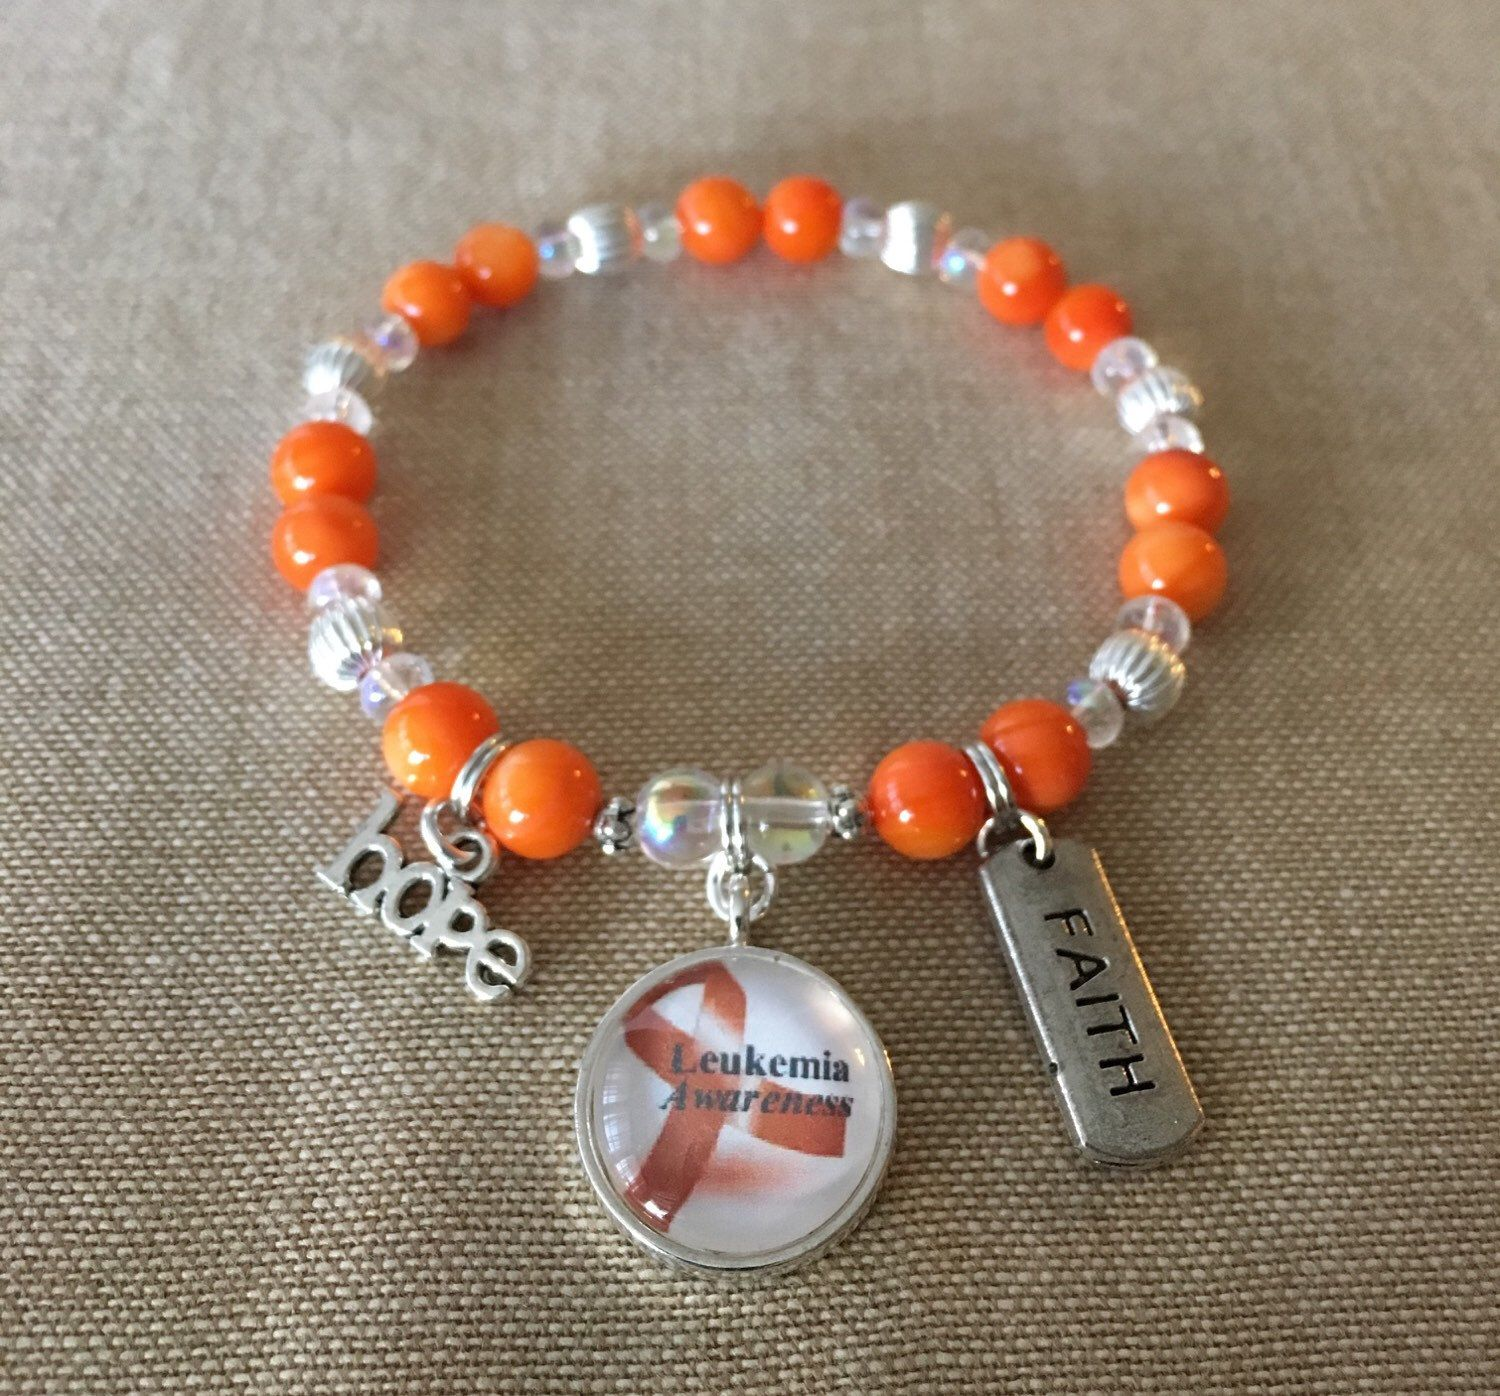 bracelet leukemia ribbon angel cancer awareness pin decor kidney